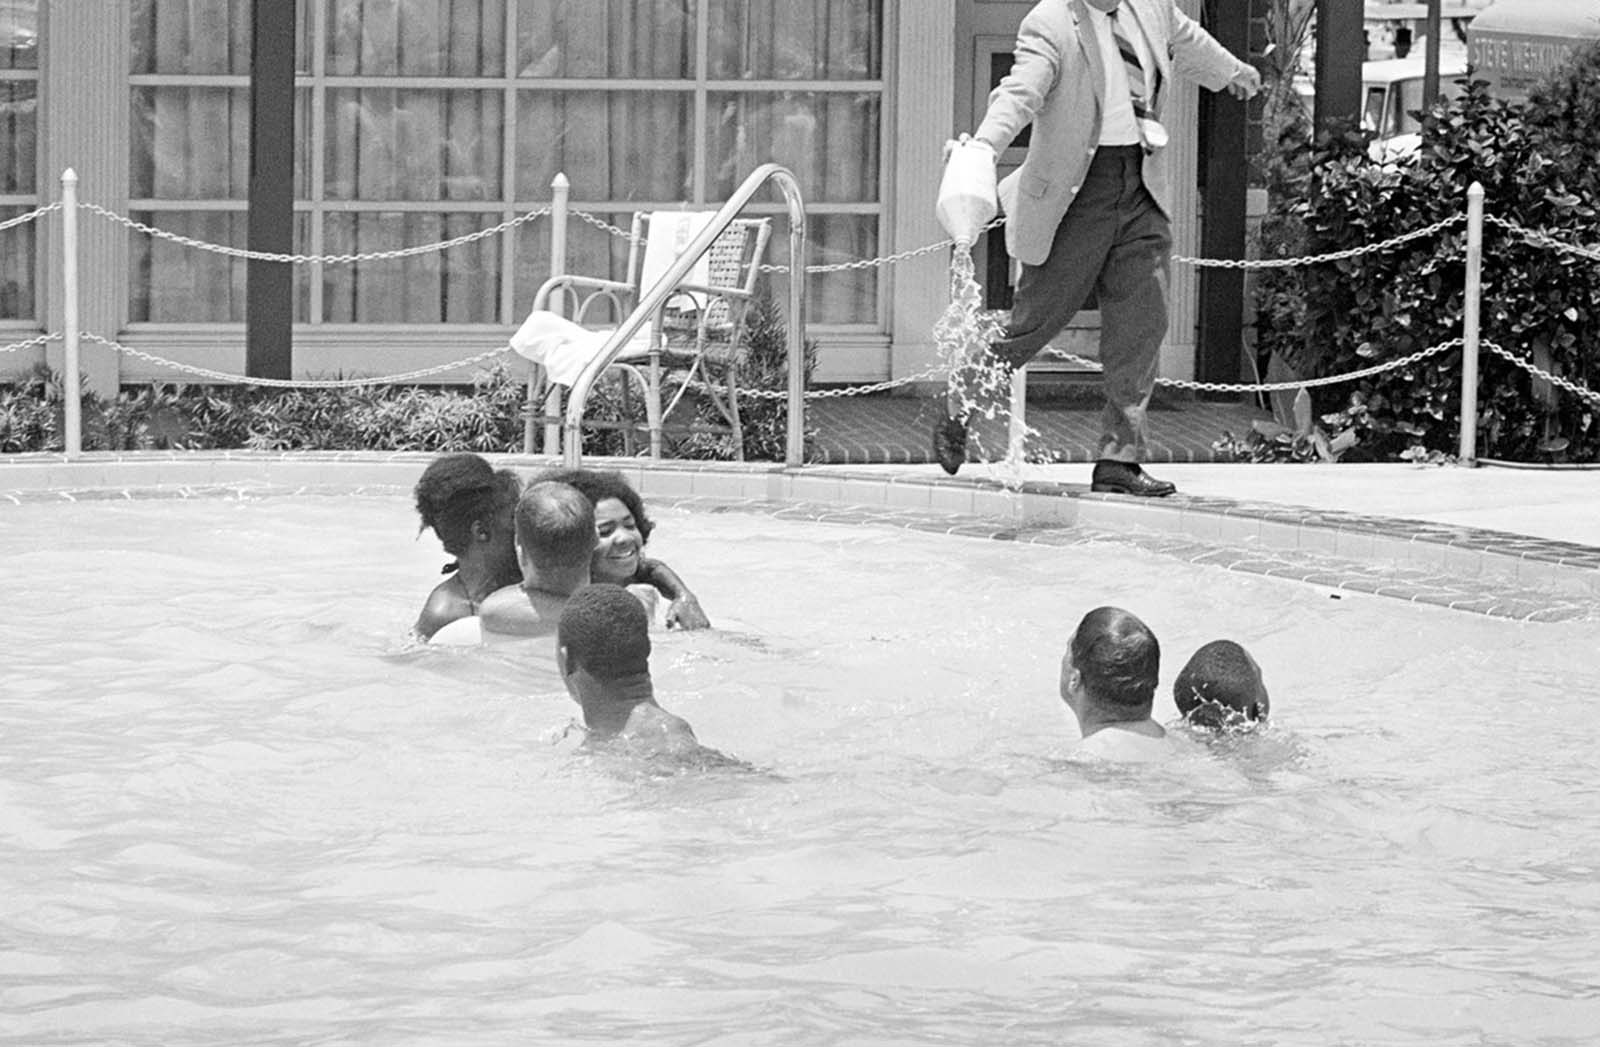 When a group of white and African American integrationists entered a segregated hotel swimming pool, manager James Brock poured acid into it, shouting